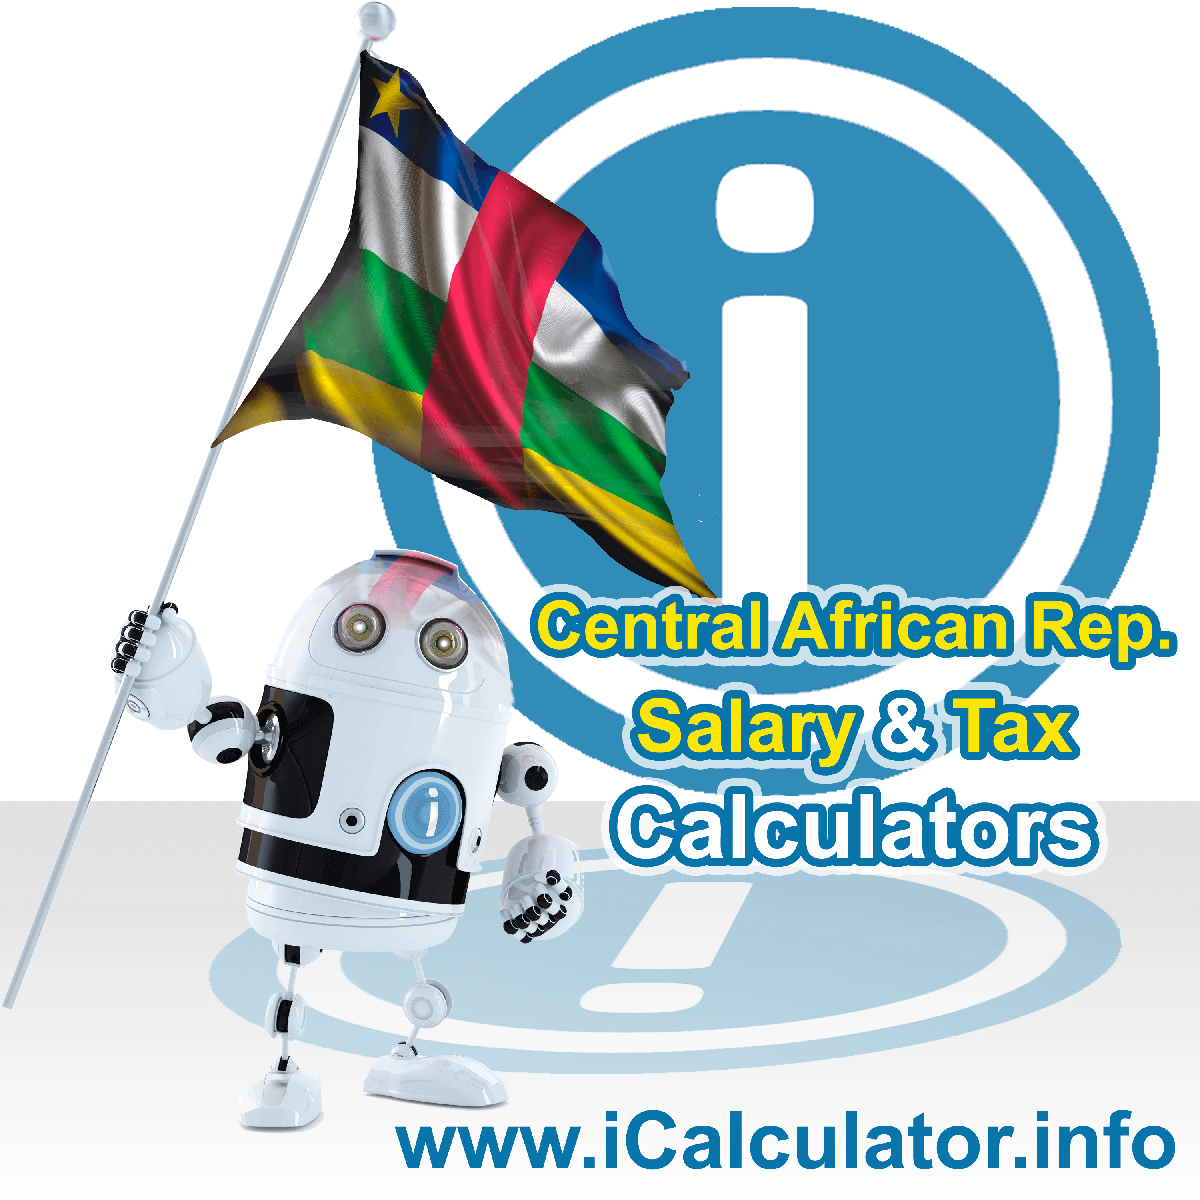 Central African Republic Wage Calculator. This image shows the Central African Republic flag and information relating to the tax formula for the Central African Republic Tax Calculator